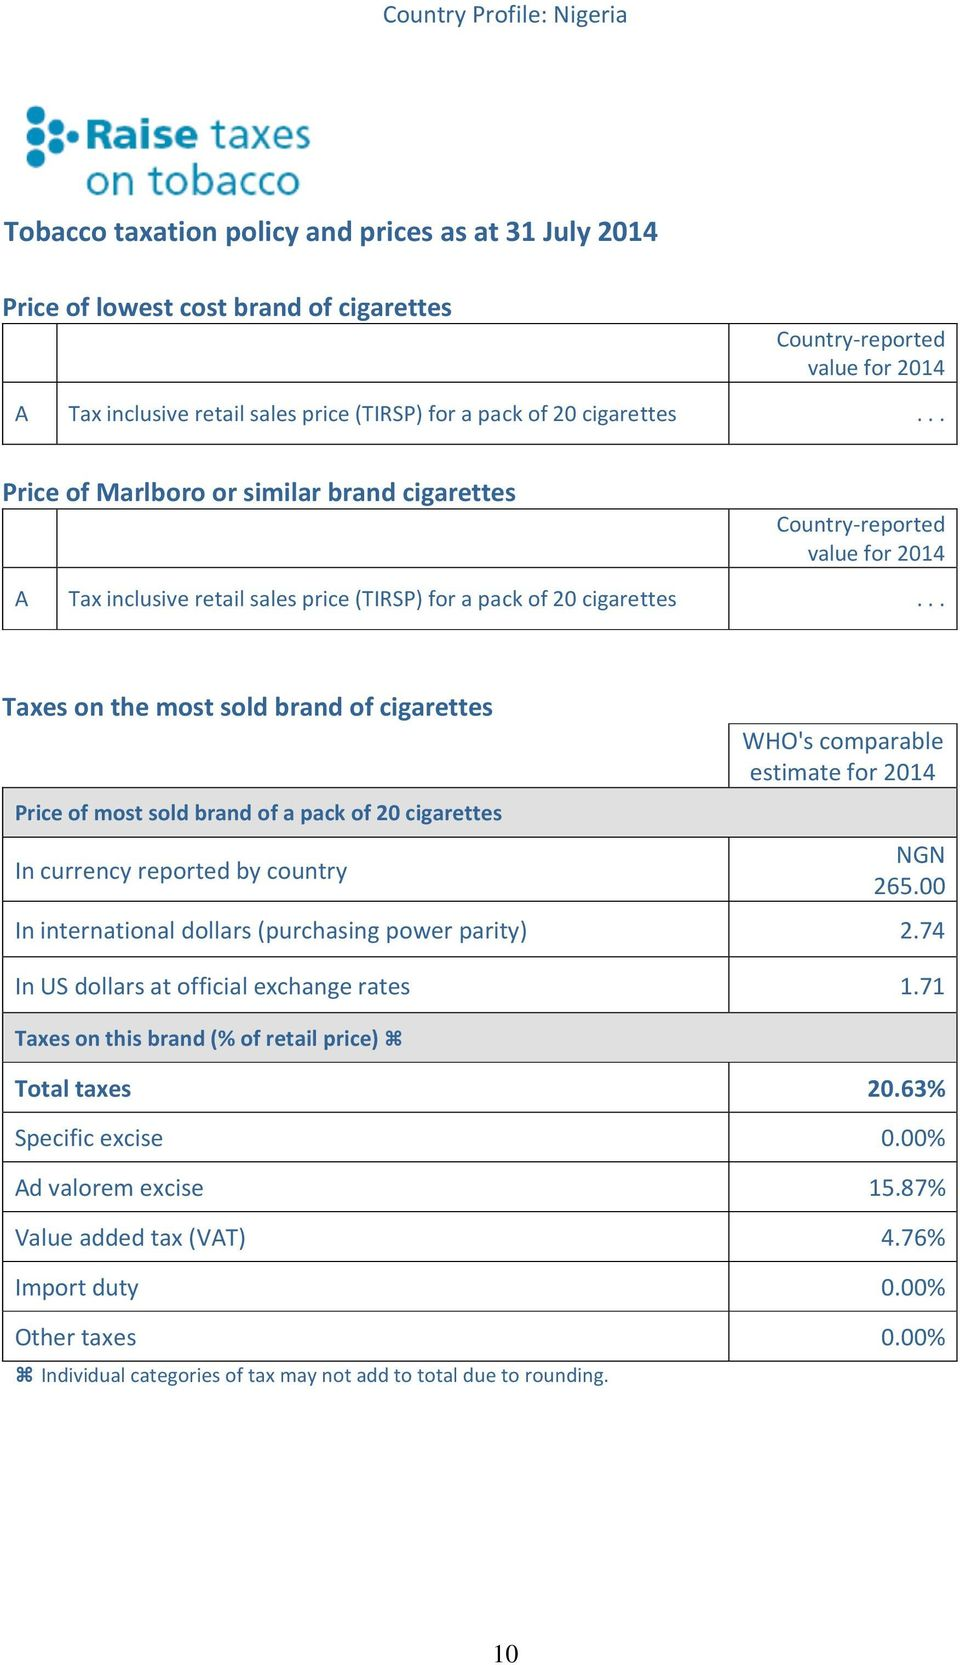 .. Taxes on the most sold brand of cigarettes Price of most sold brand of a pack of 20 cigarettes In currency reported by country WHO's comparable estimate for 2014 NGN 265.